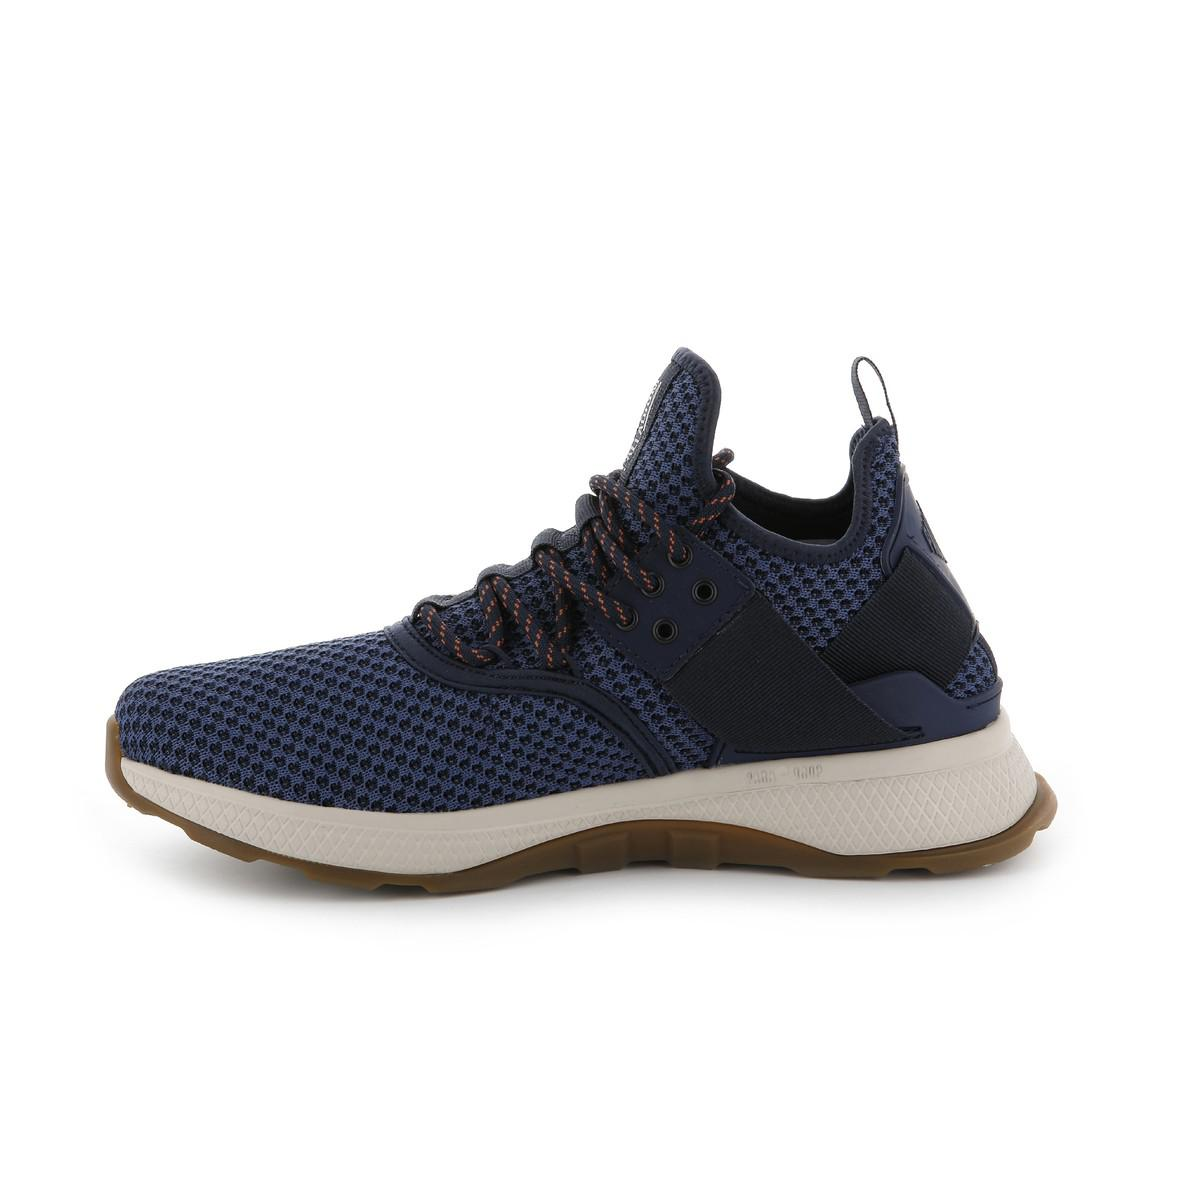 outlet shop for PALLADIUM Axeon Lace-Up Trainers discount fashionable hrEZiBBawB